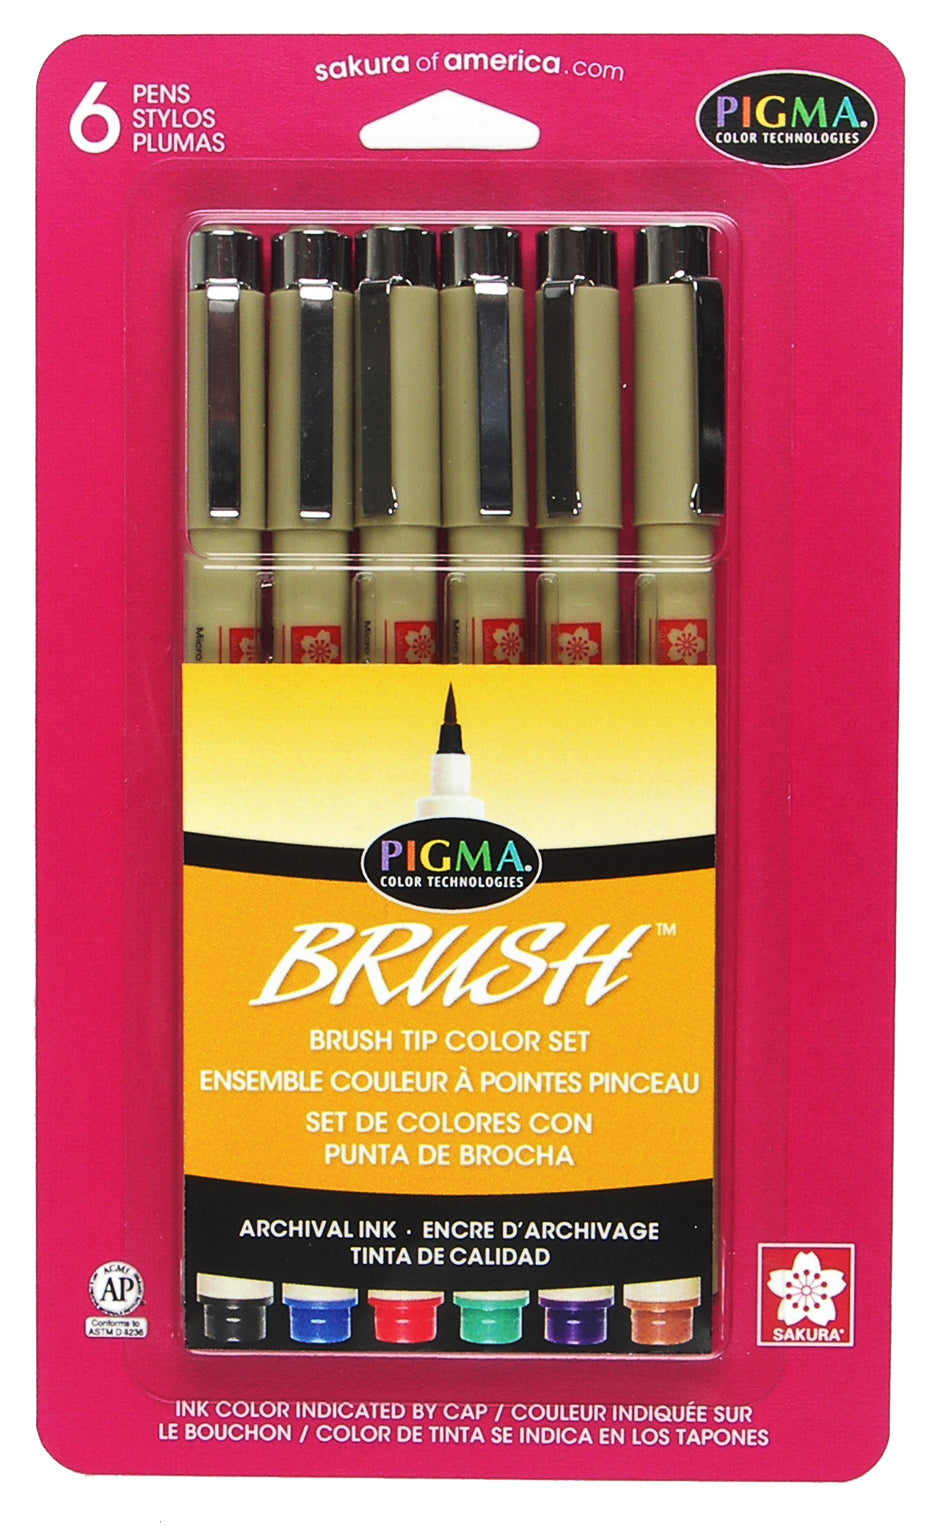 Sakura Pigma Brush 6 Pack Assorted